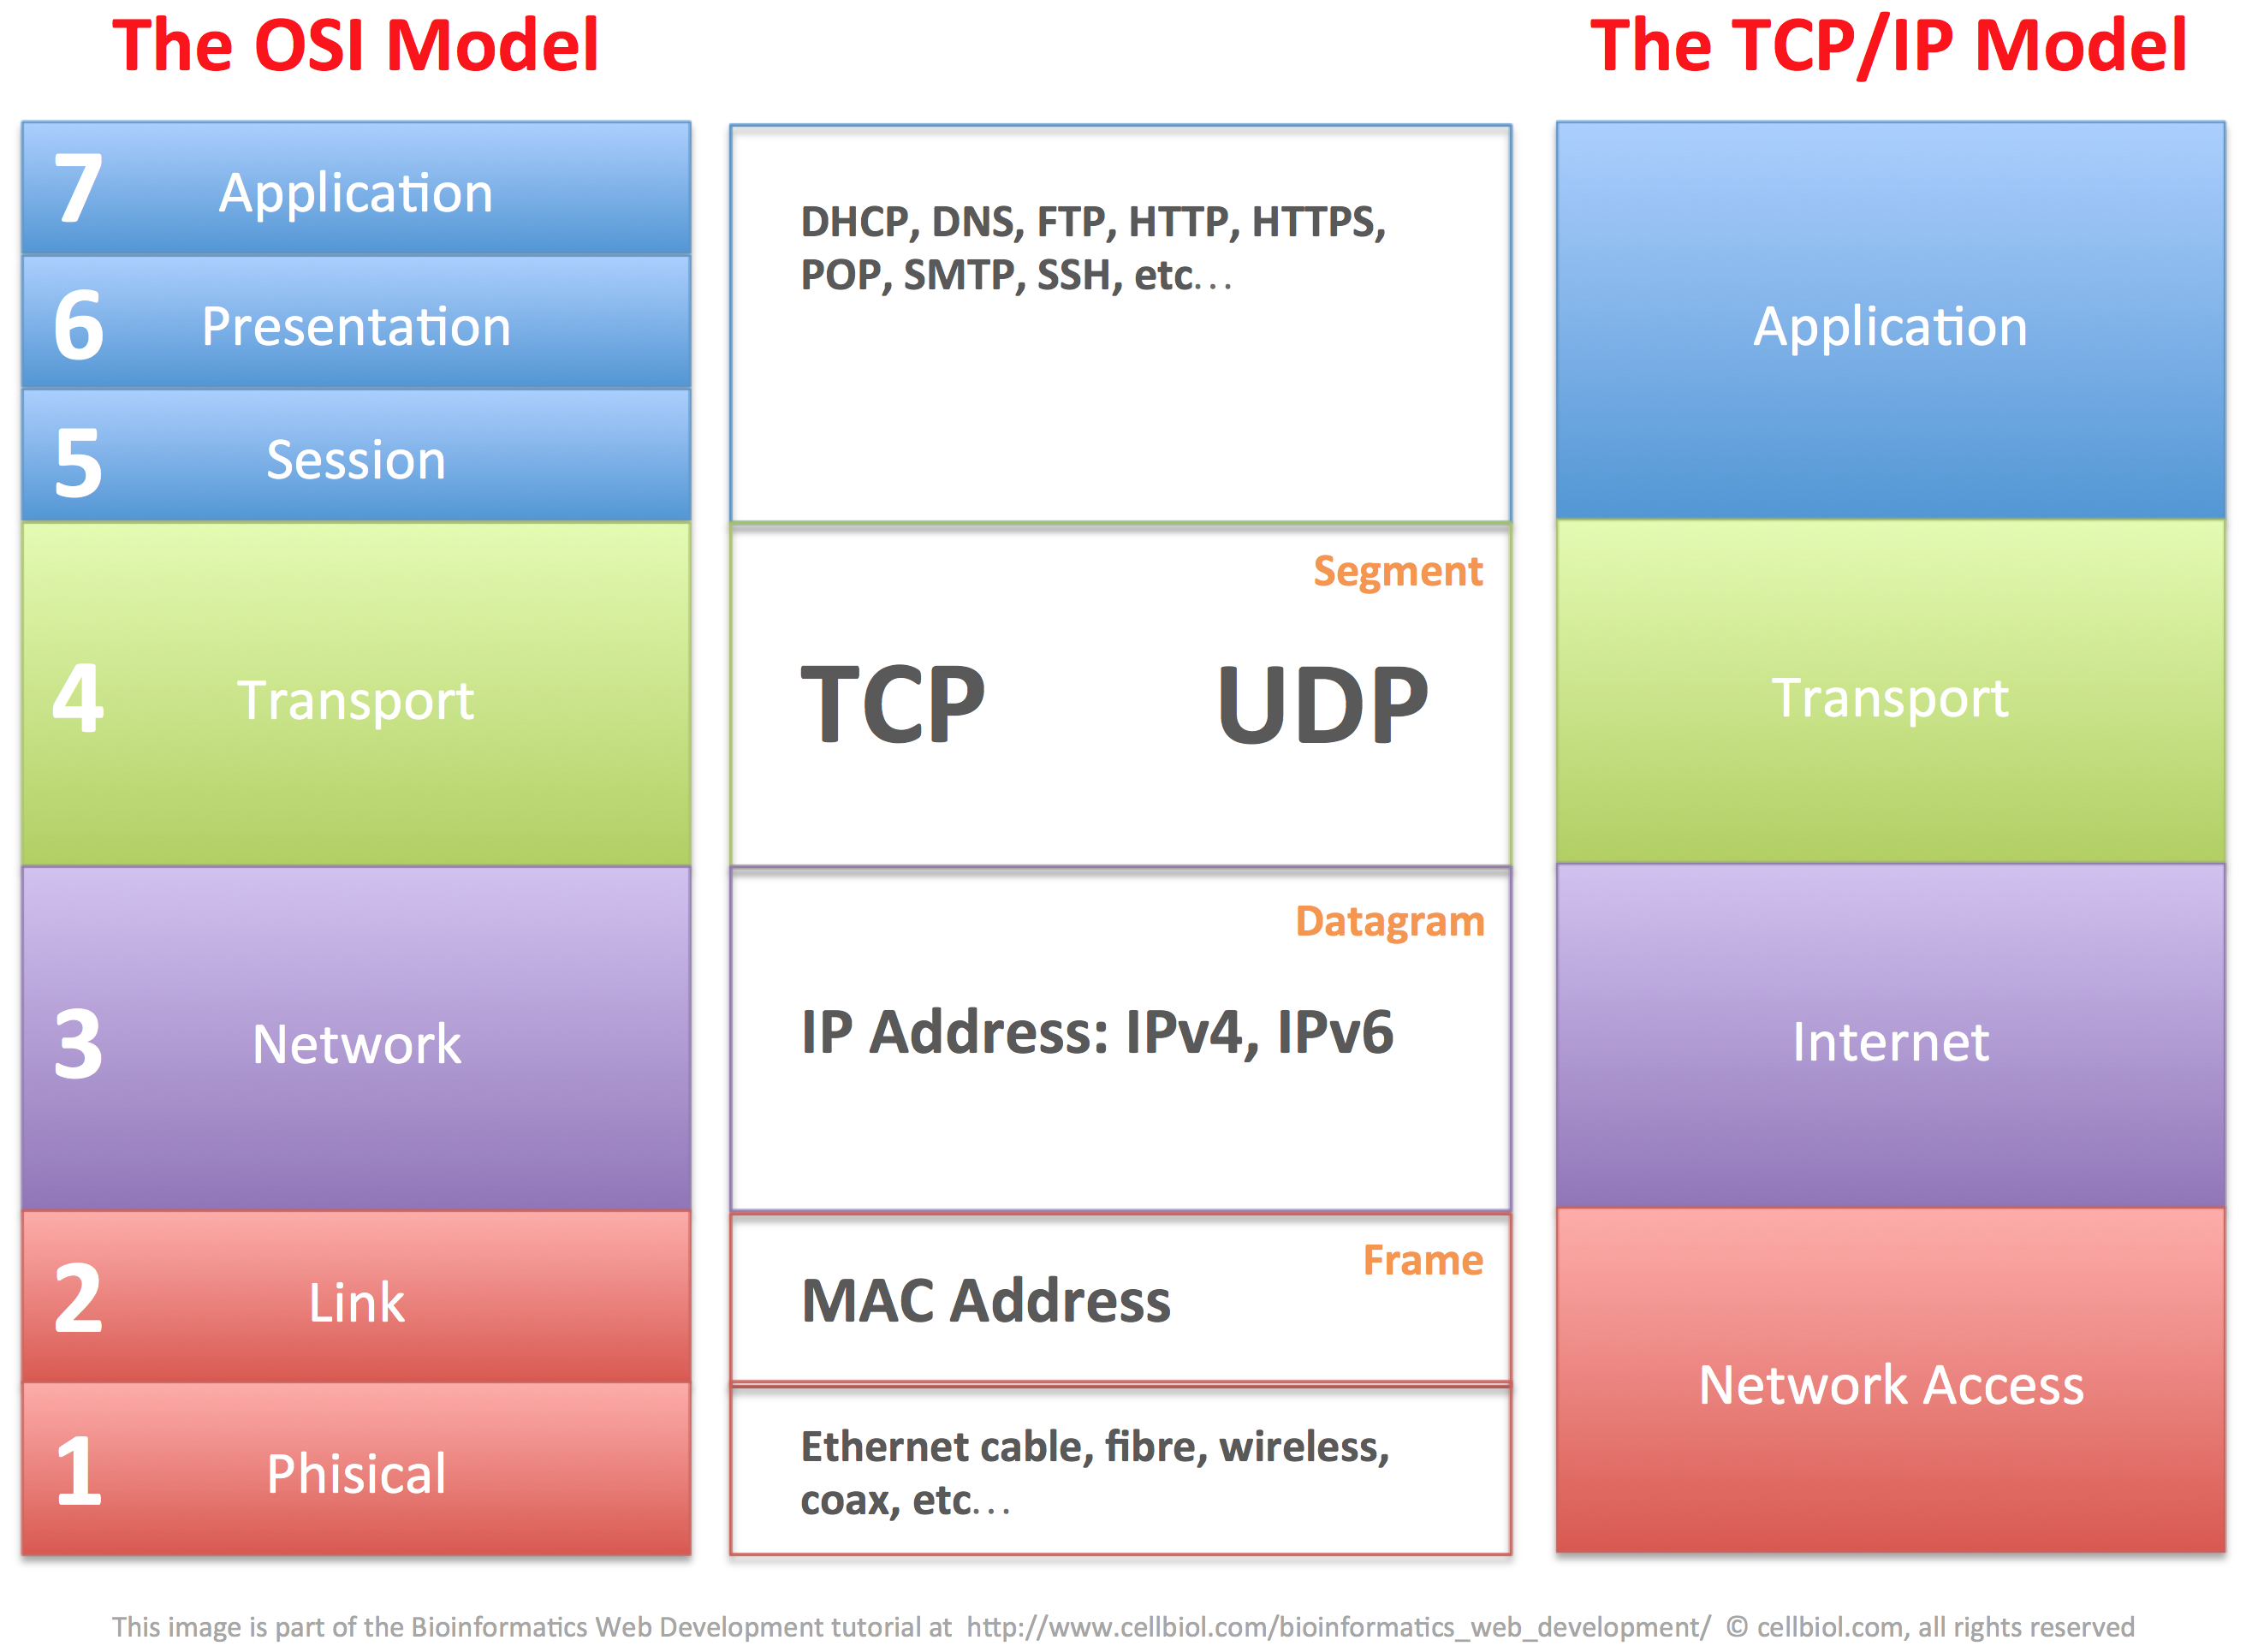 1-2: The TCP/IP family of Internet protocols